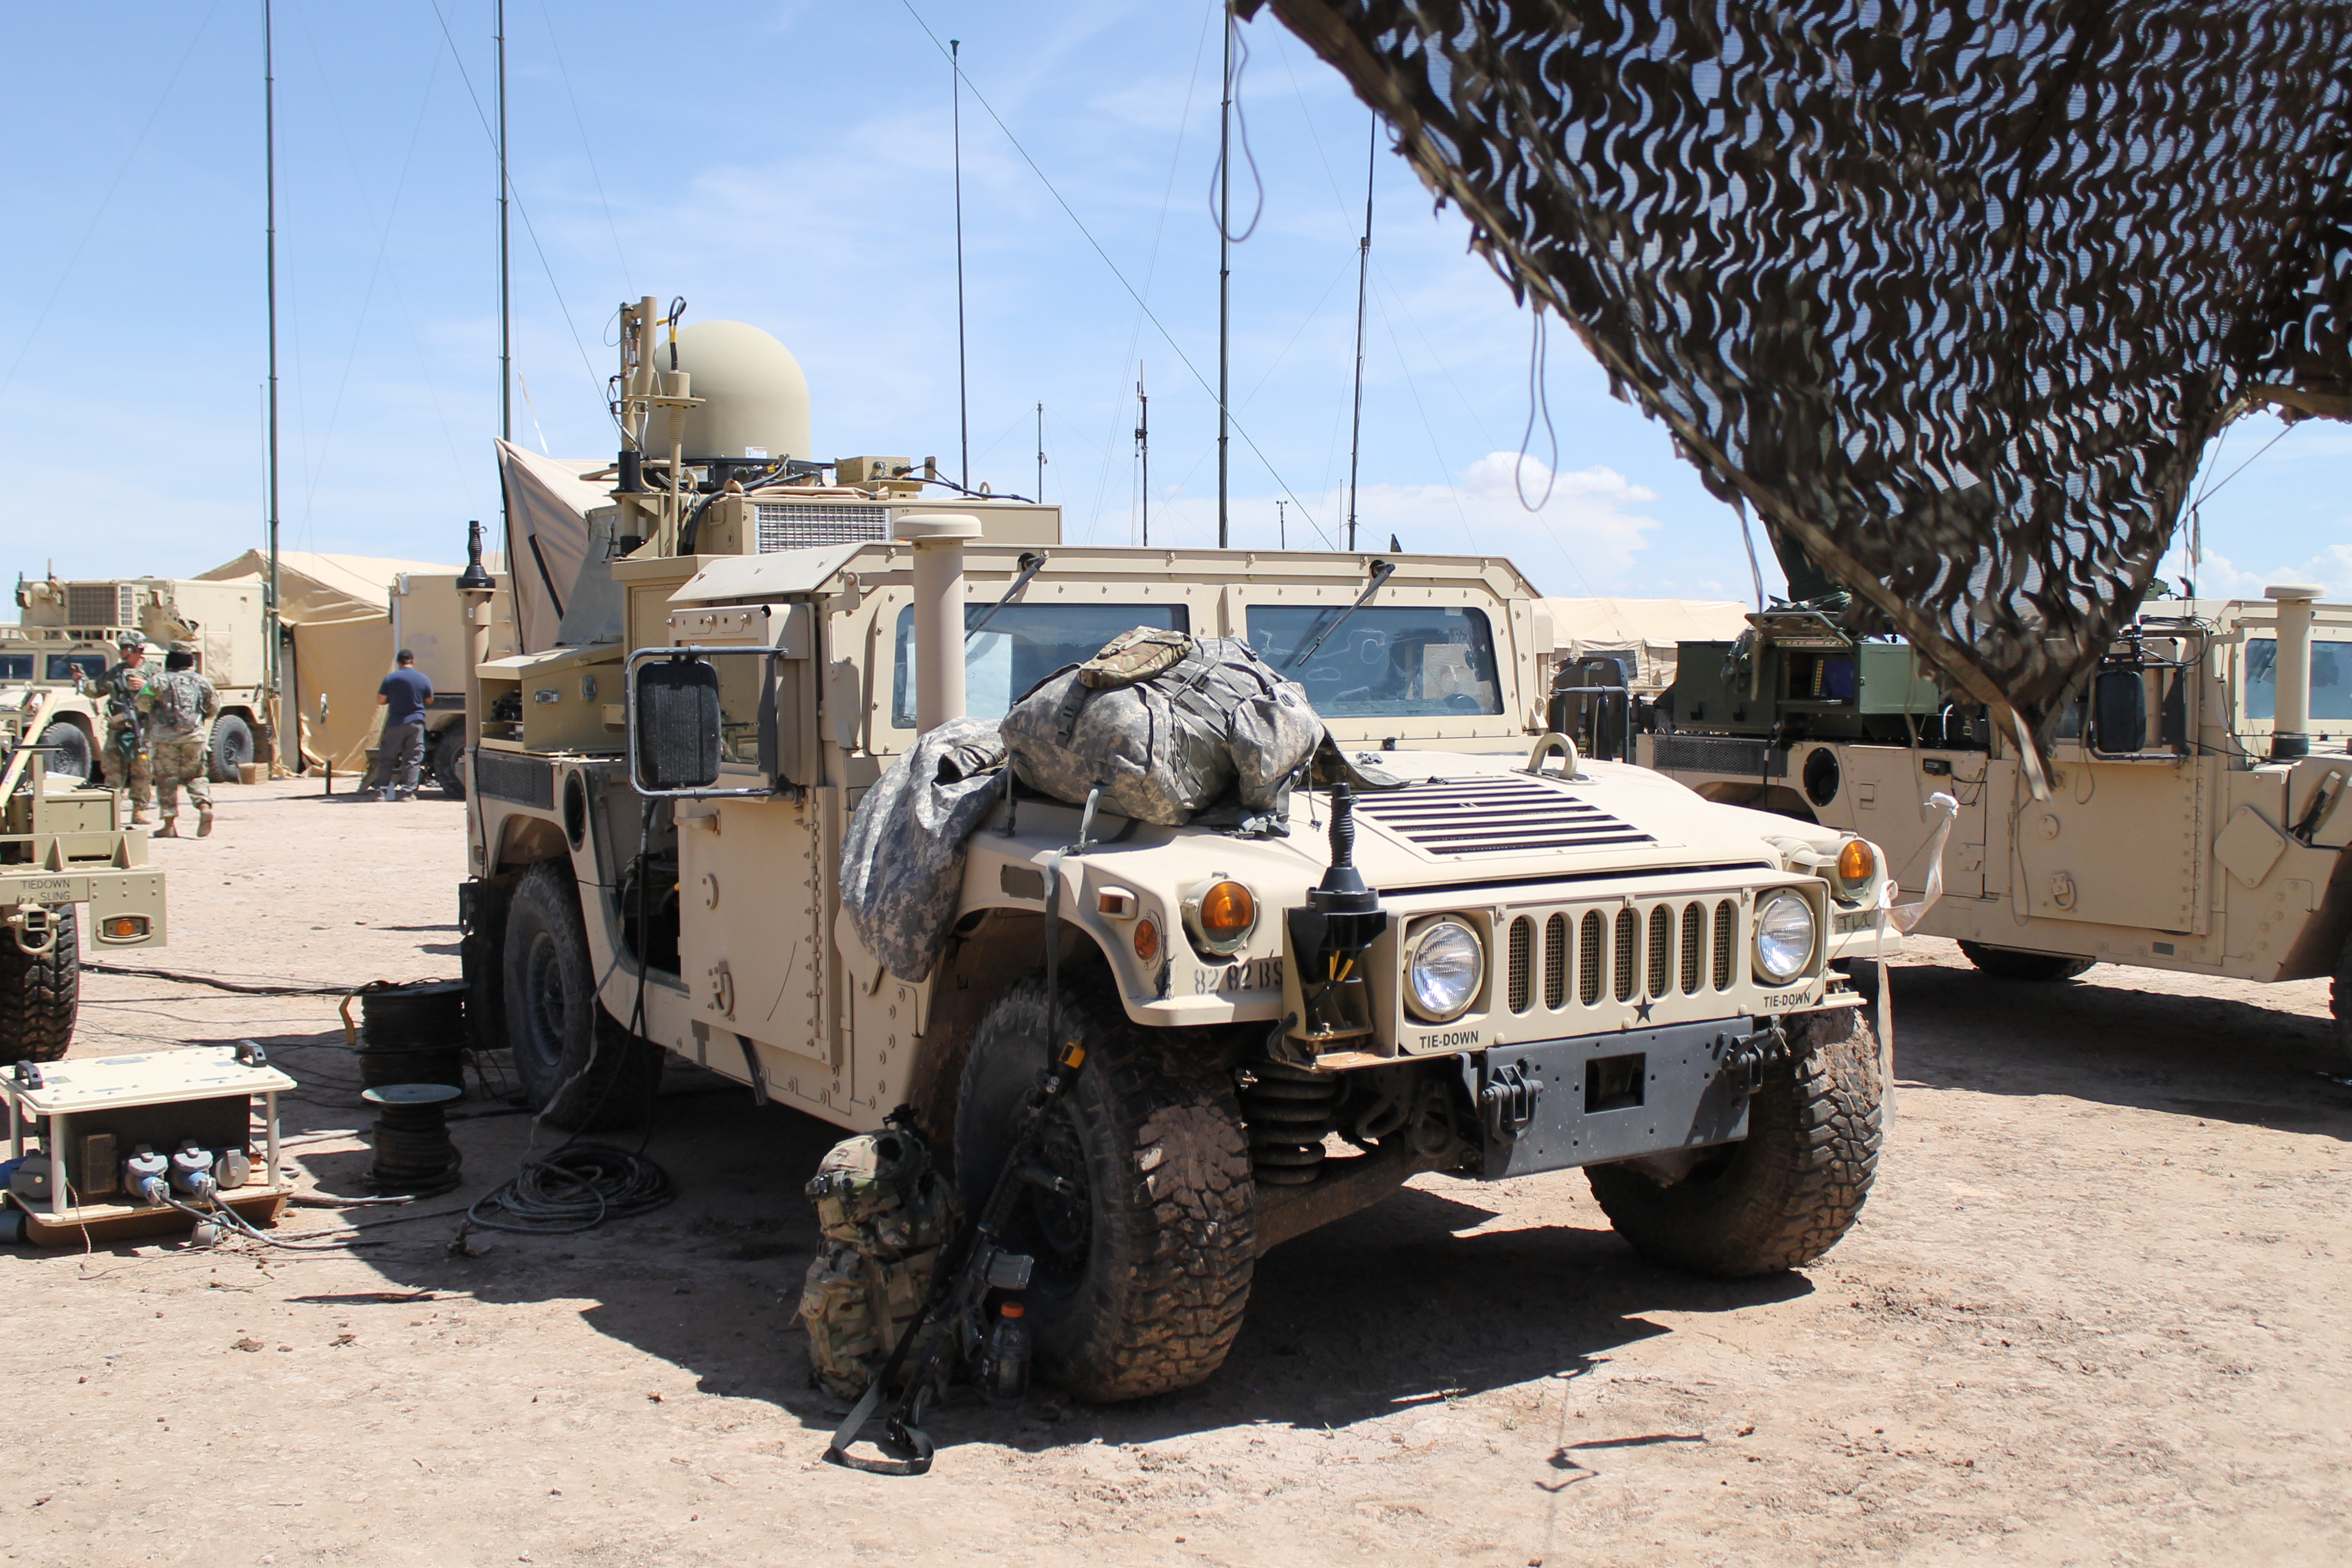 The TCN-L was performing well during tests out at the NIE, according to users, and provided much needed mobility. It's important to move network communication systems regularly in order to avoid detection by enemy looking to locate forces or jam connections. (Jen Judson/Staff)